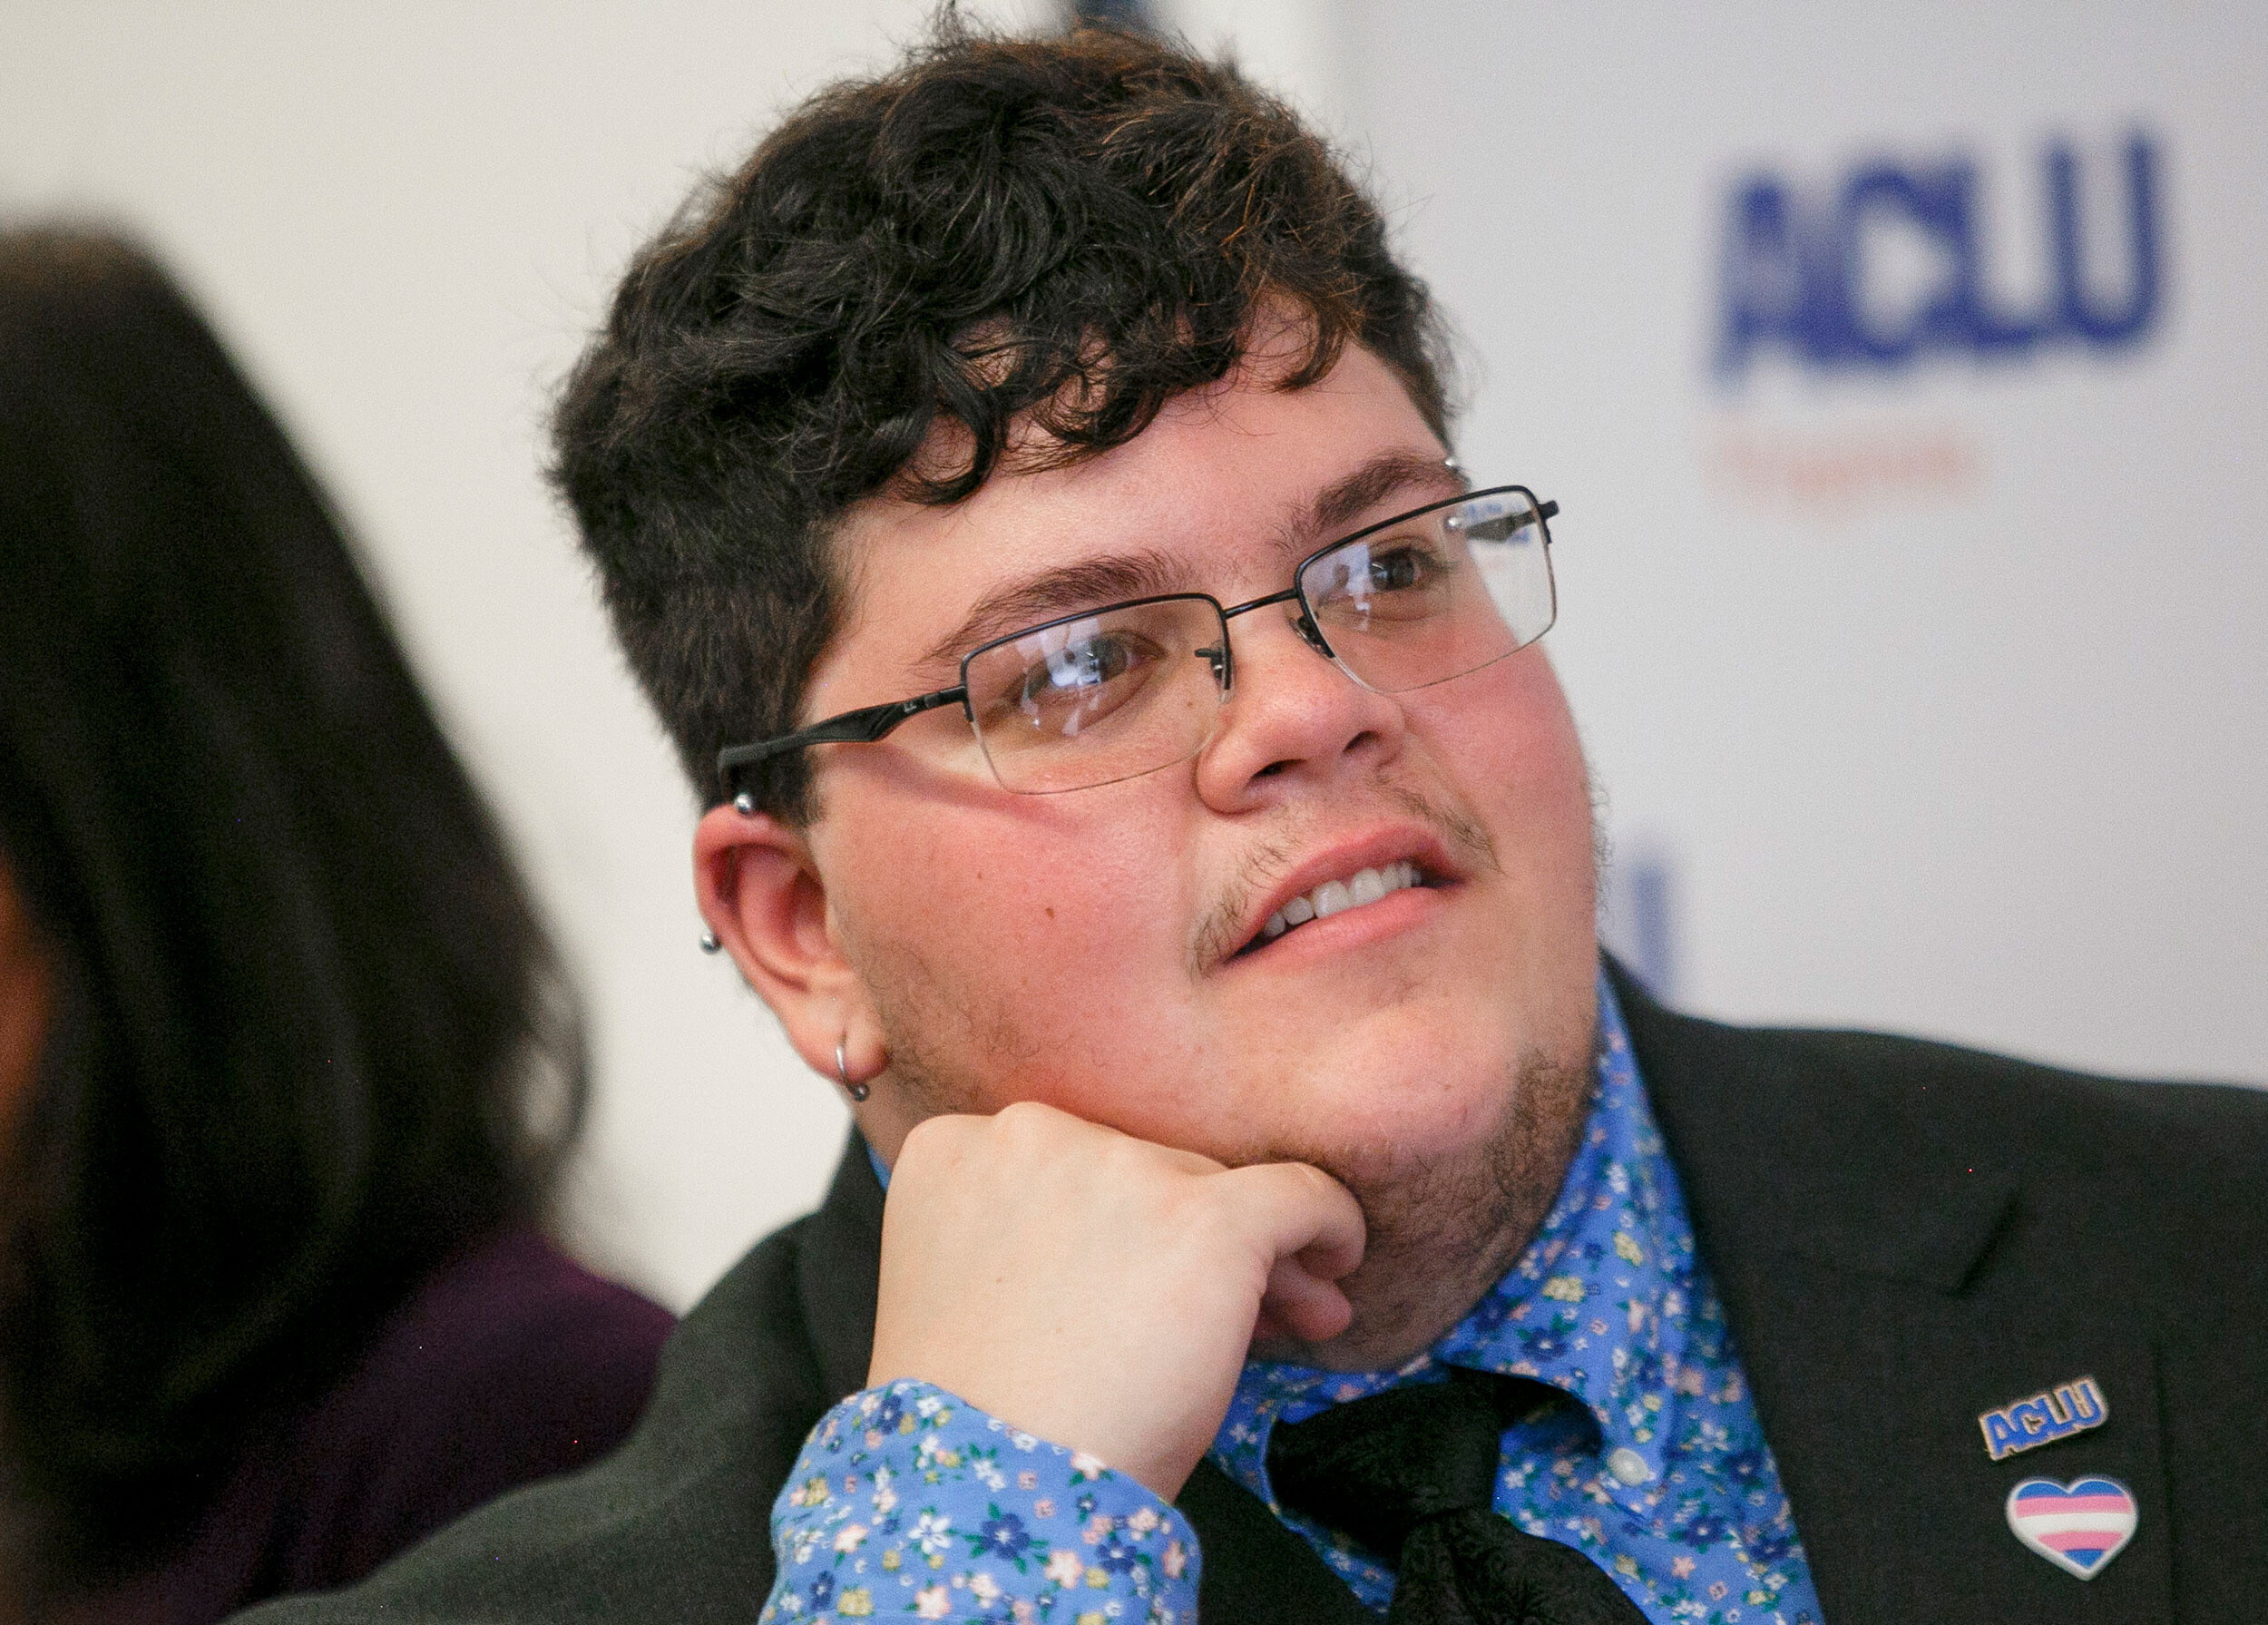 School board to pay $1.3 million in legal fees to ACLU in trans student case